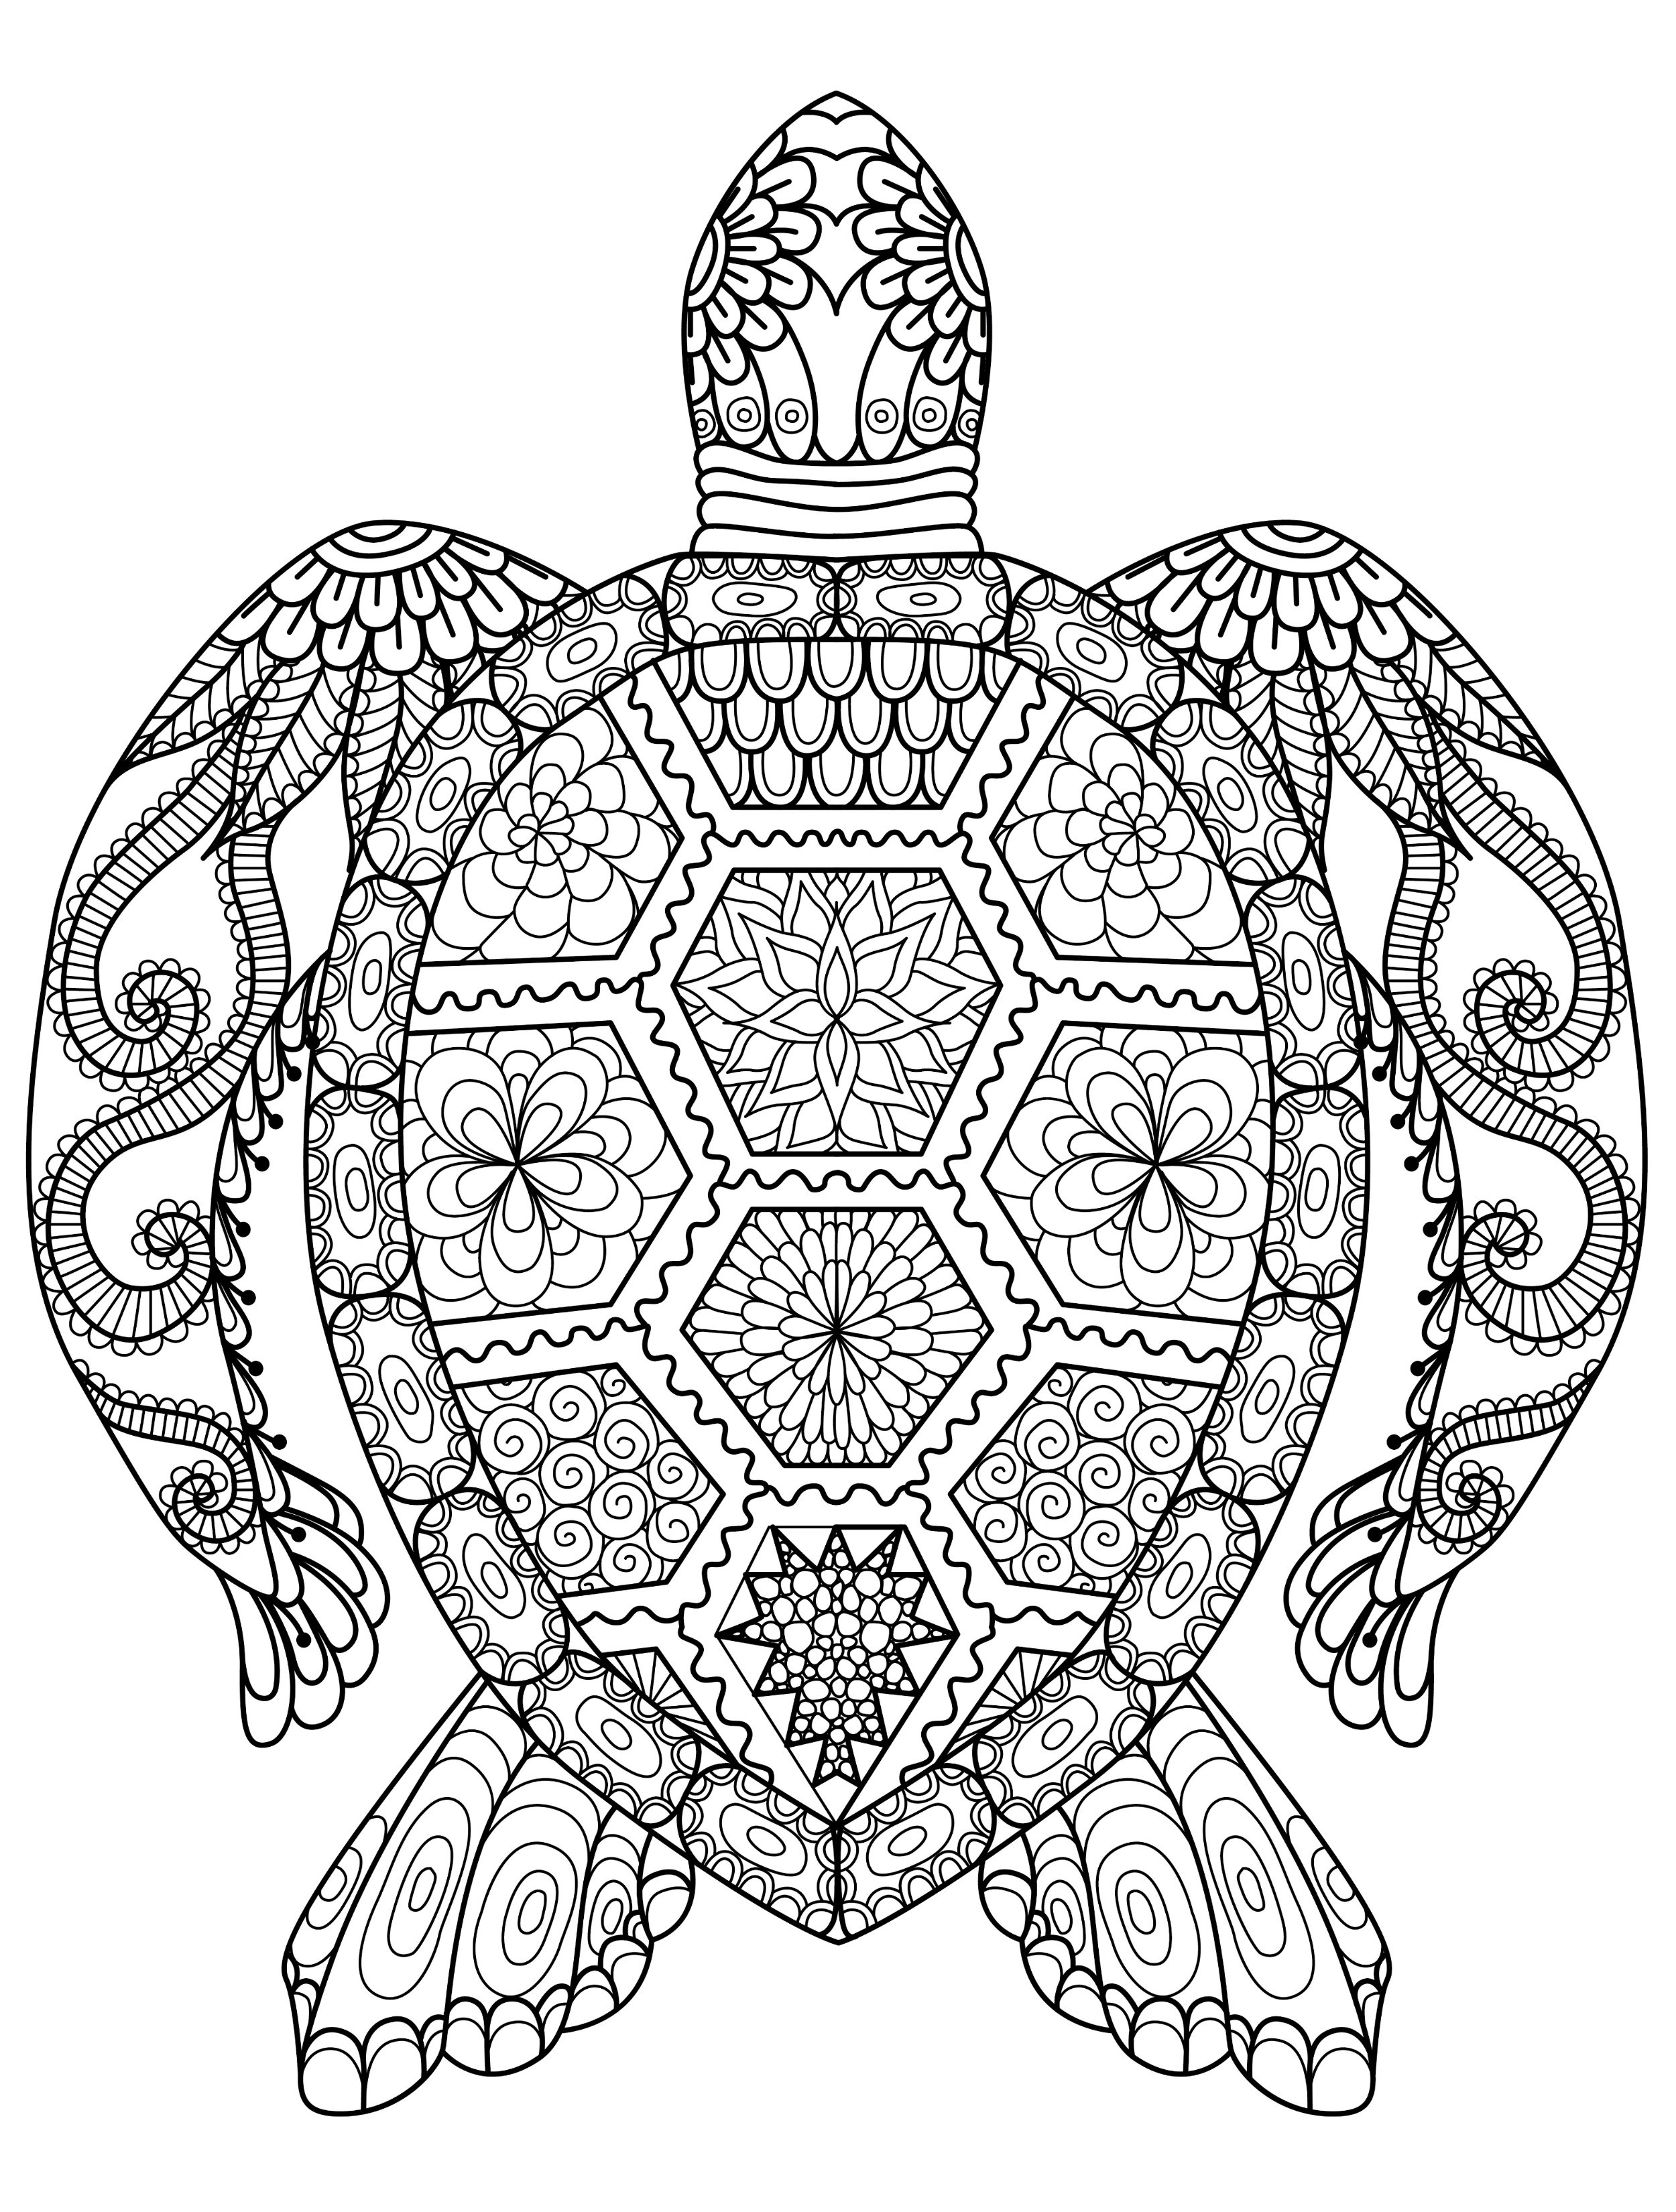 Online Coloring Pages For Adults 55 Best Animal Coloring Pages Adults Online Coloring Pages Birijus Com